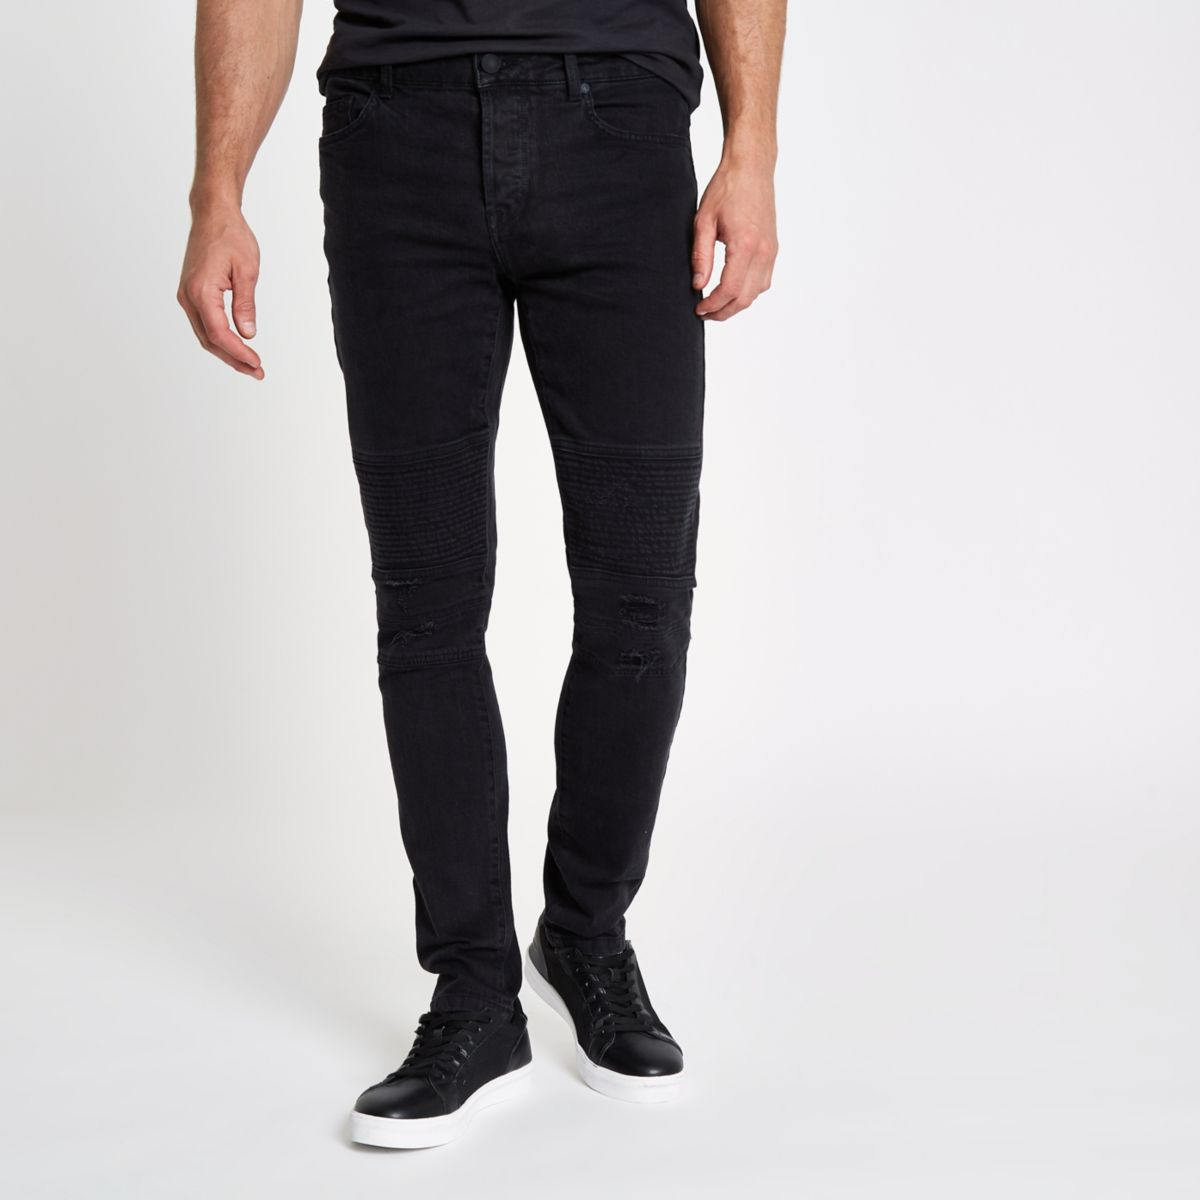 Only & Sons black slim fit biker panel jeans